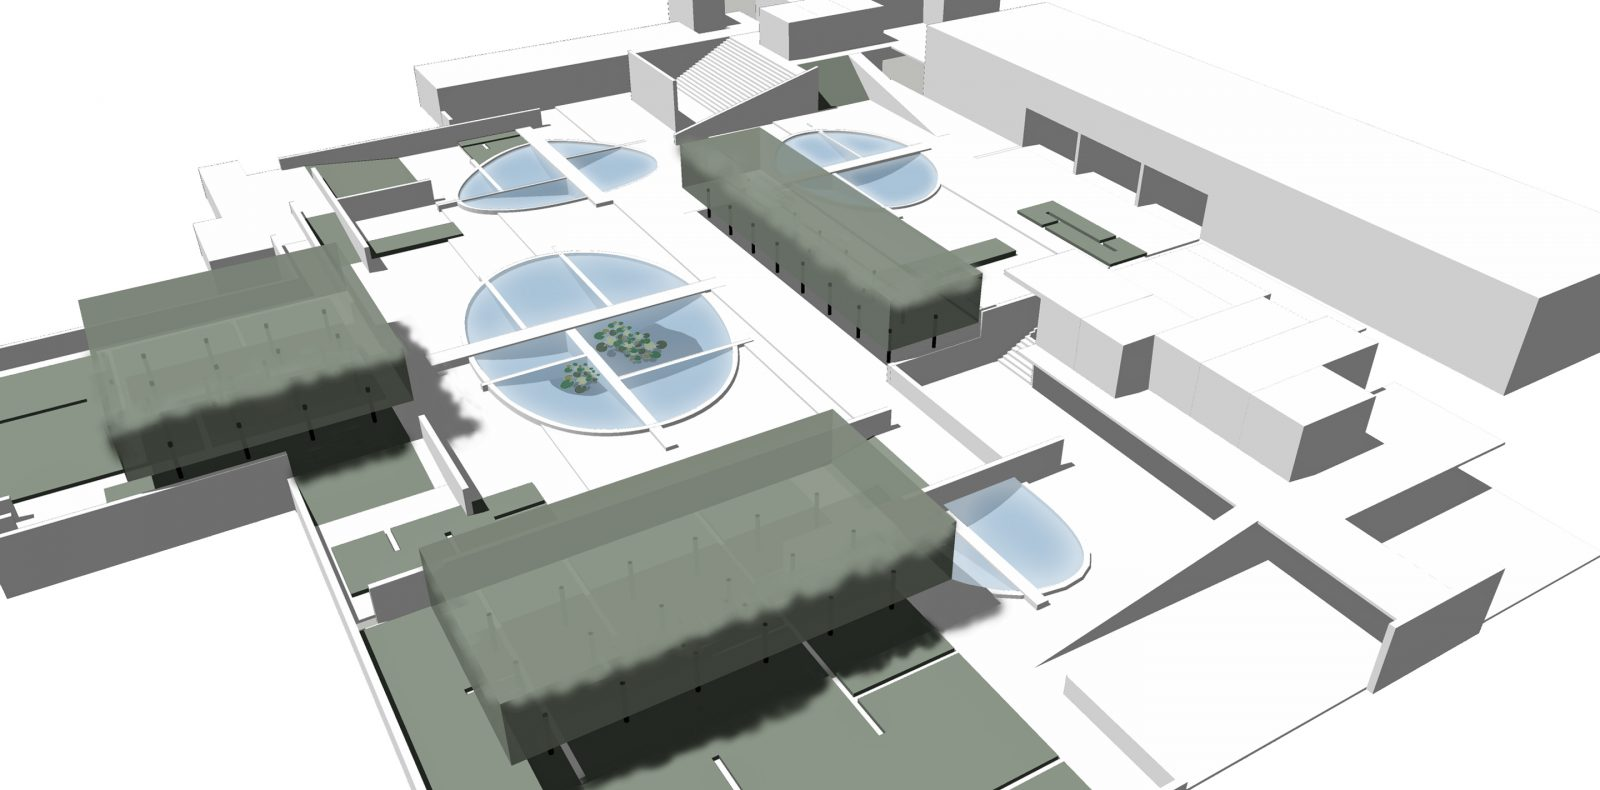 Embassy project according to the 1966 design, scale 1 : 250, reconstruction and ill. CENTRALA, 2020